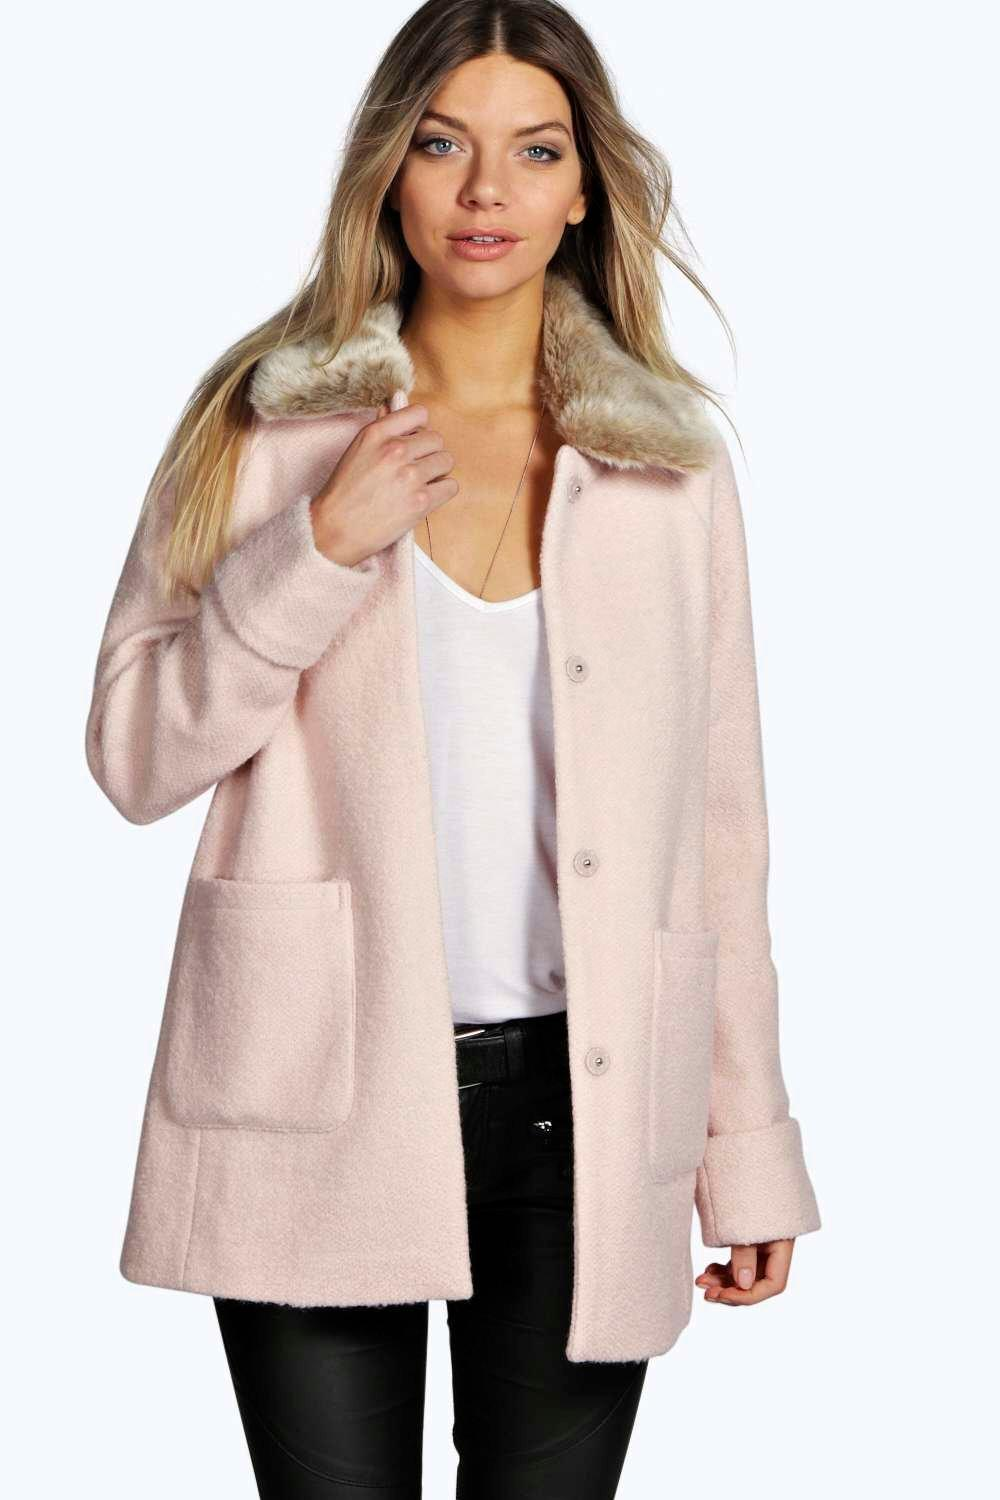 Fur Collars & Cuffs from Fur Hat World add pizazz to a casual or formal outfit. Easily add a fur collar to your coat or jacket to give it a new look. These delightful accessories can be found in a range of styles, from golden fox fur to lush Mongolian sheep fur/5().